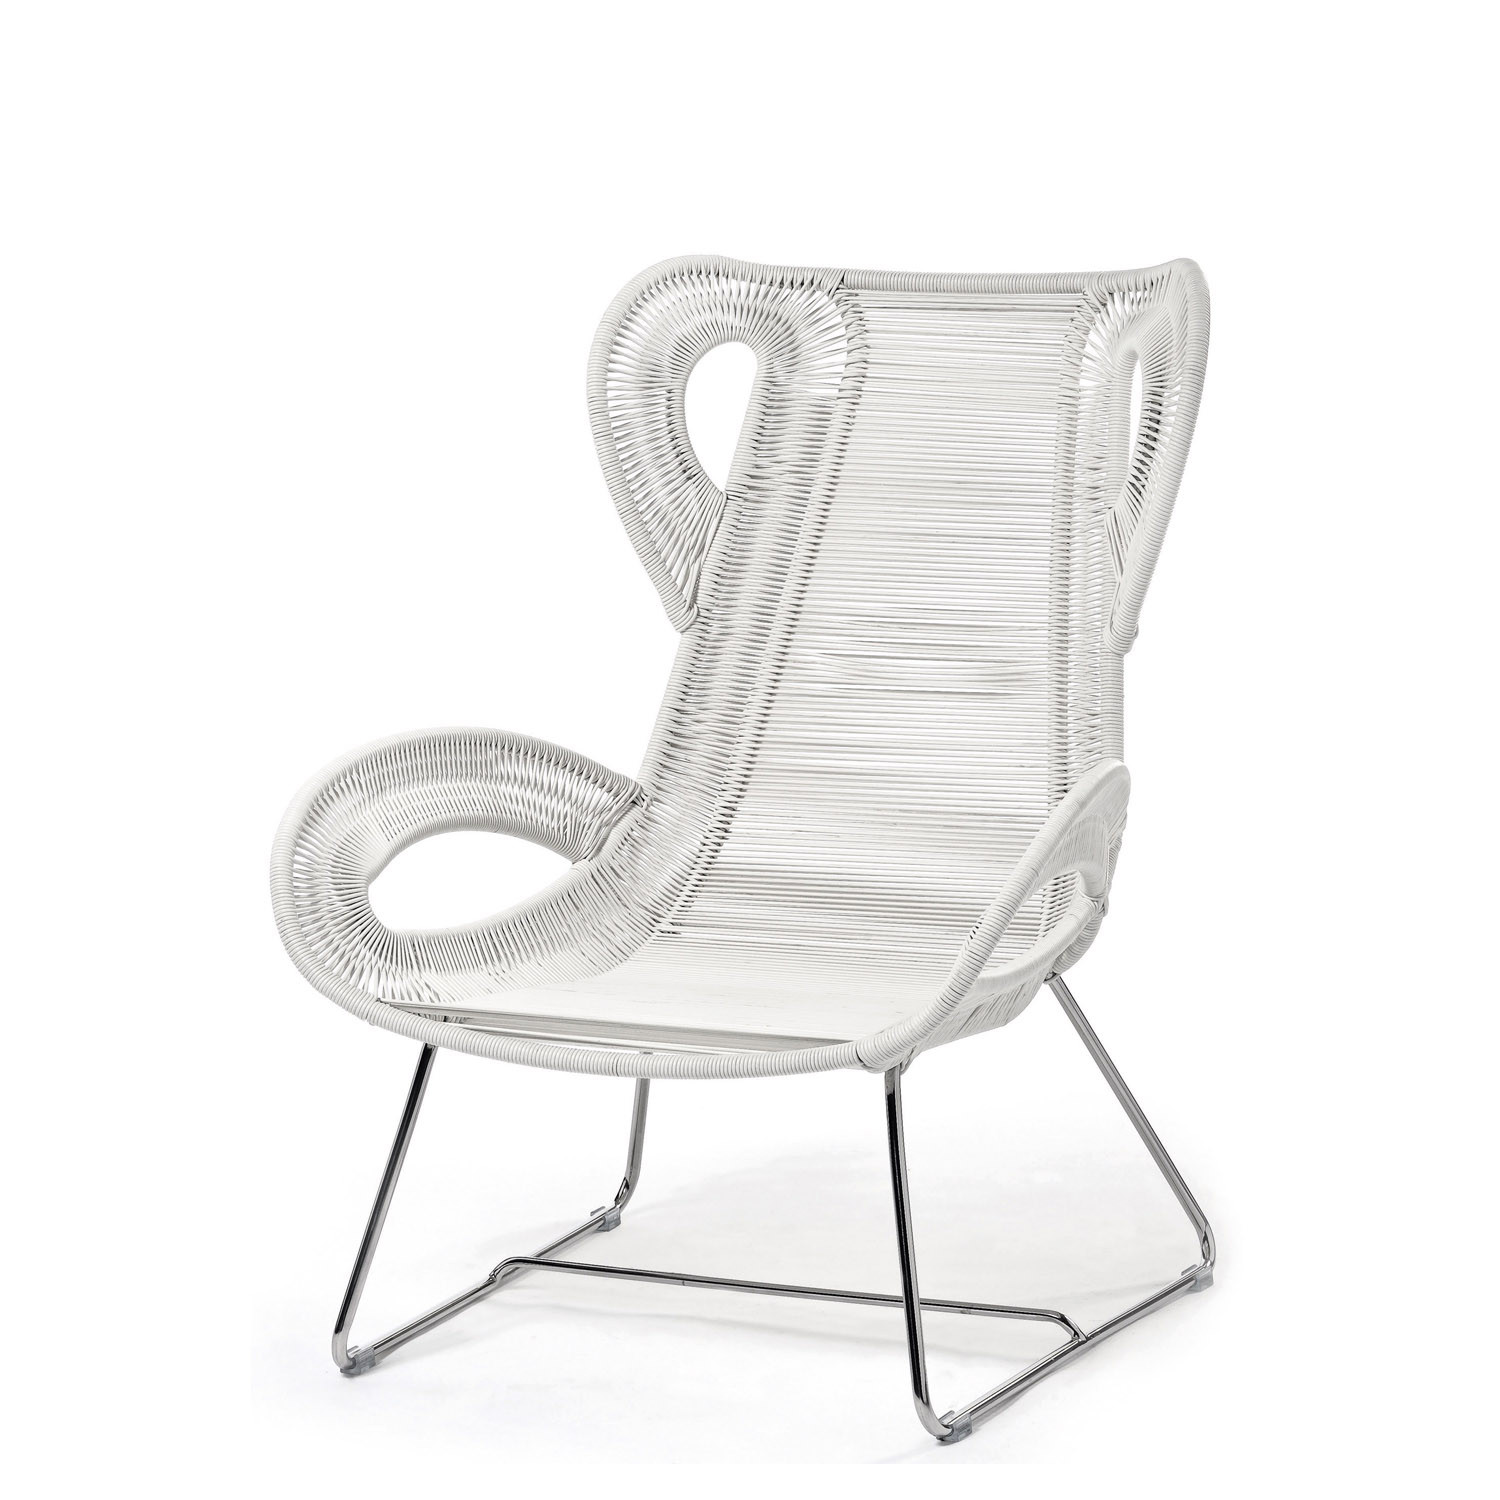 Coates Loop Bergere Chair in White Acrylic